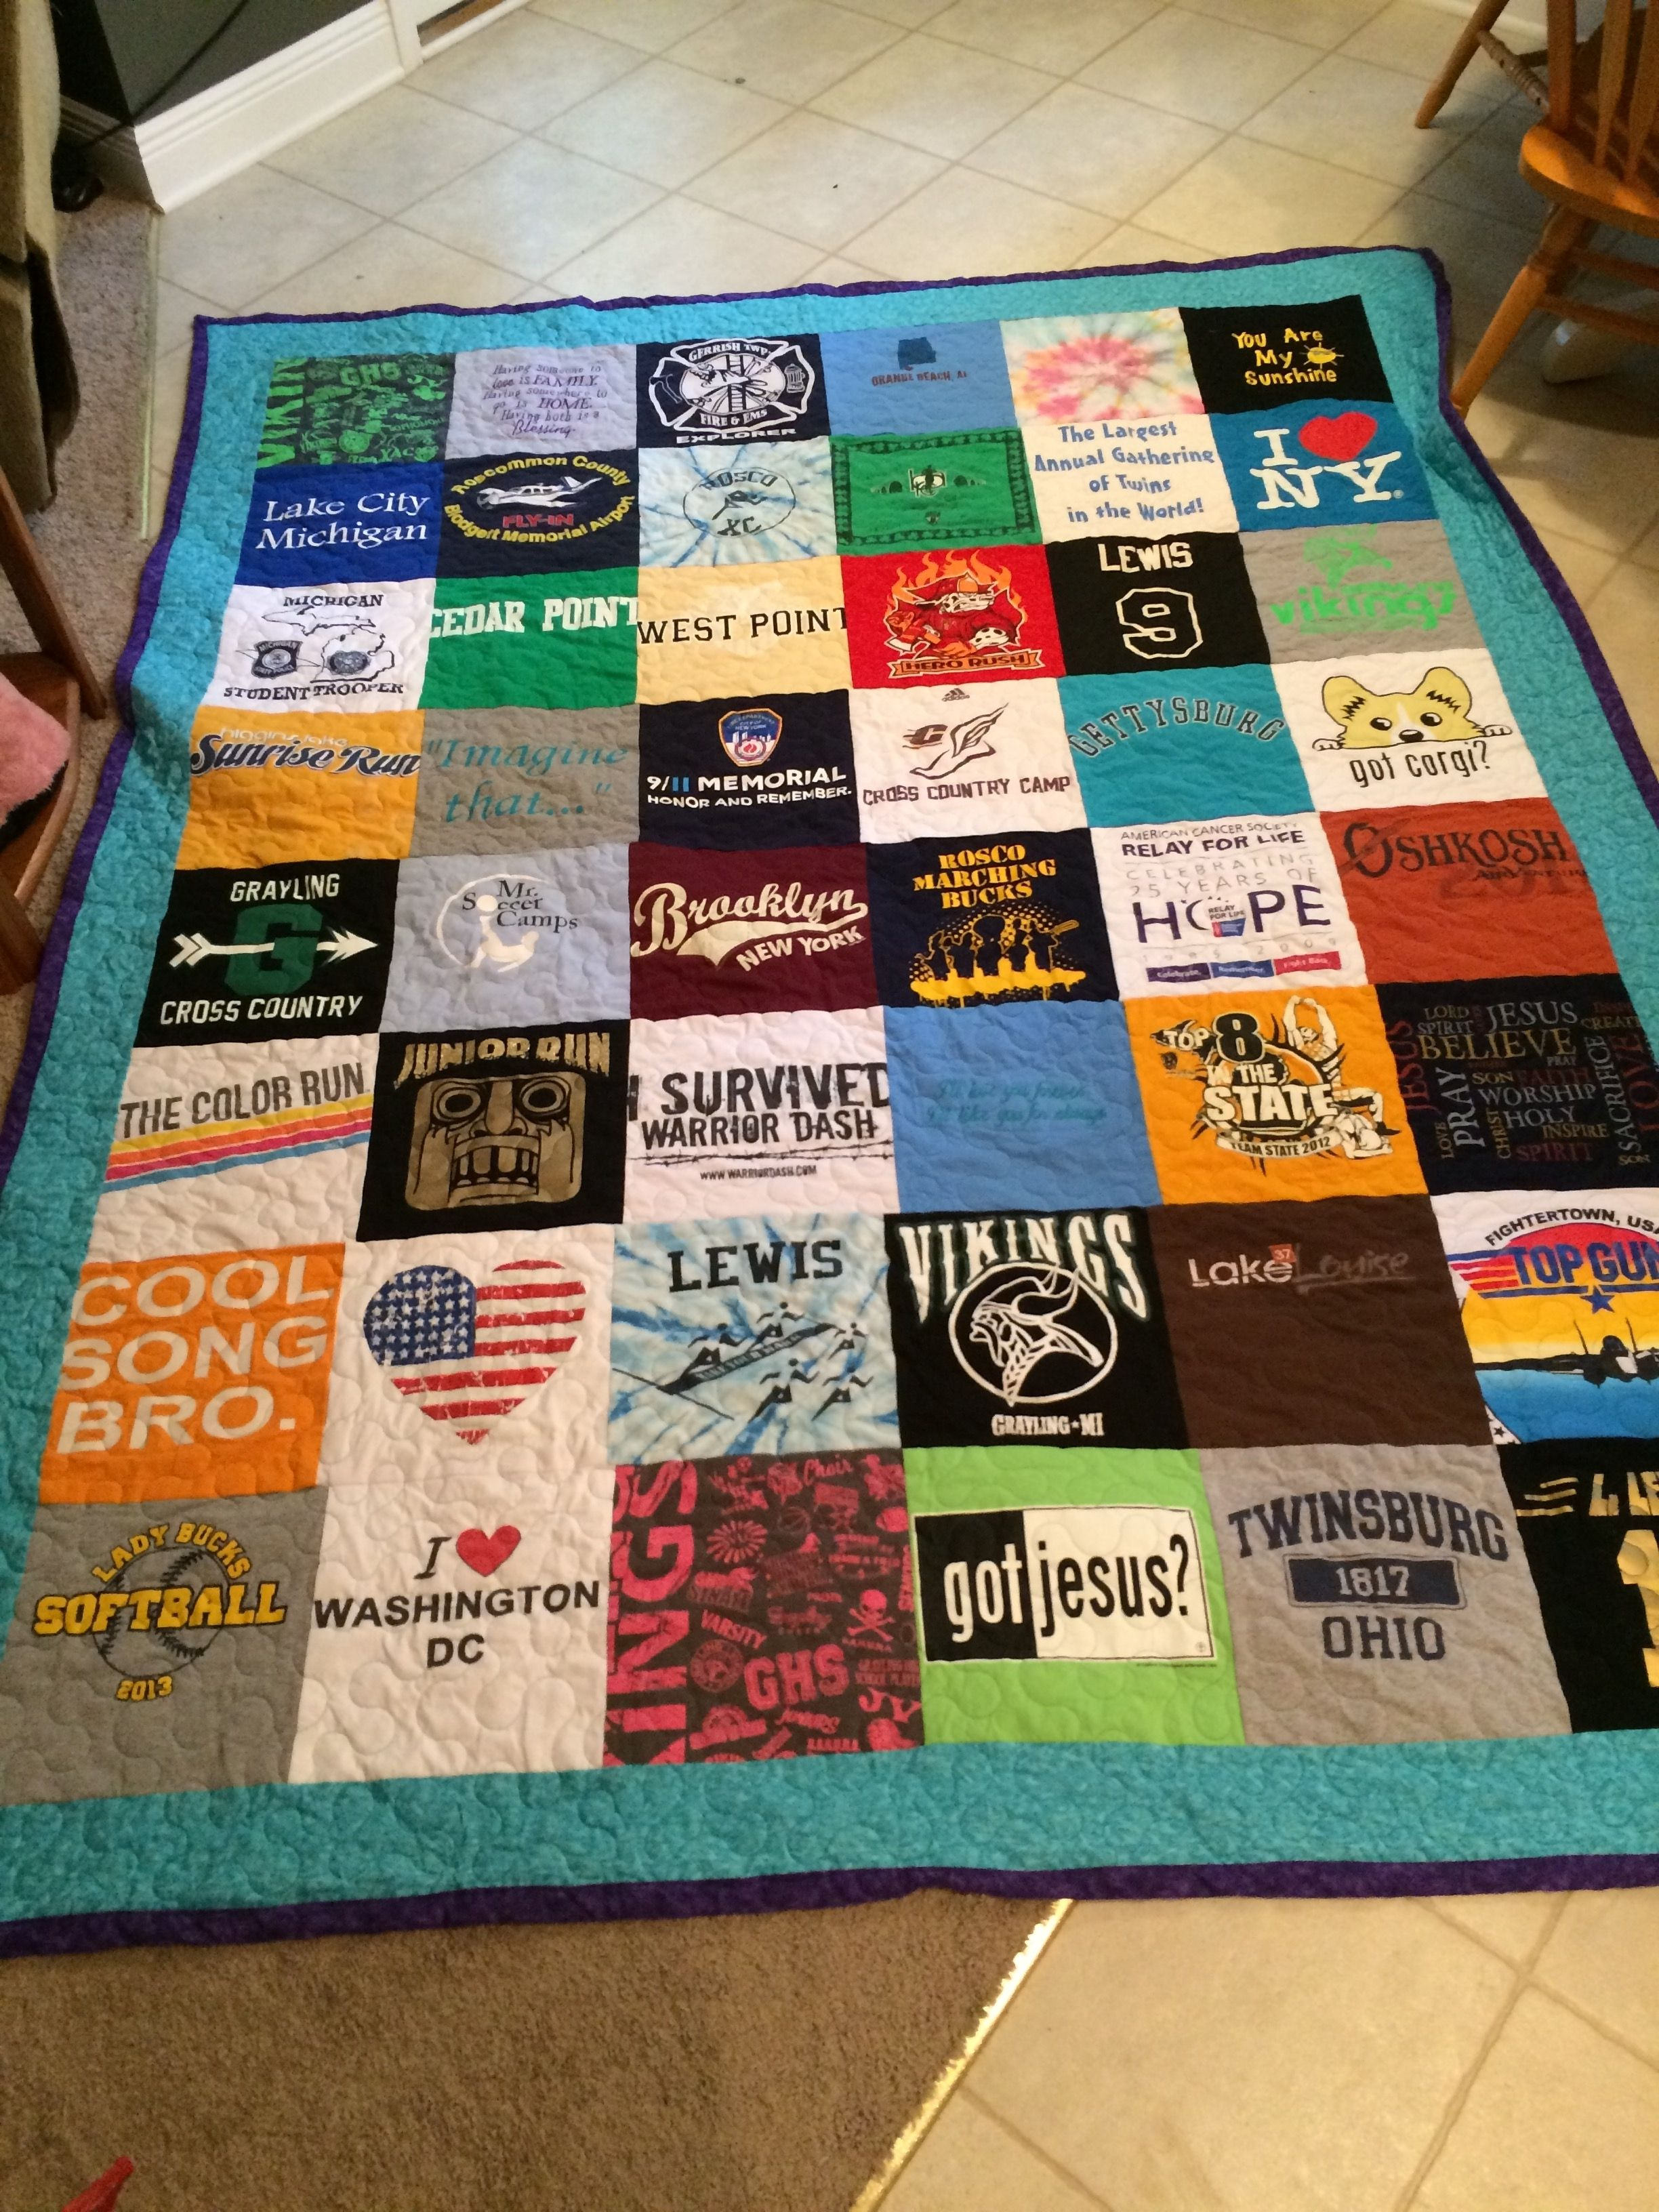 Easy Quilt Patterns For Graduation : Made this t-shirt memory quilt for my daughter as a gift during her senior year of high school ...